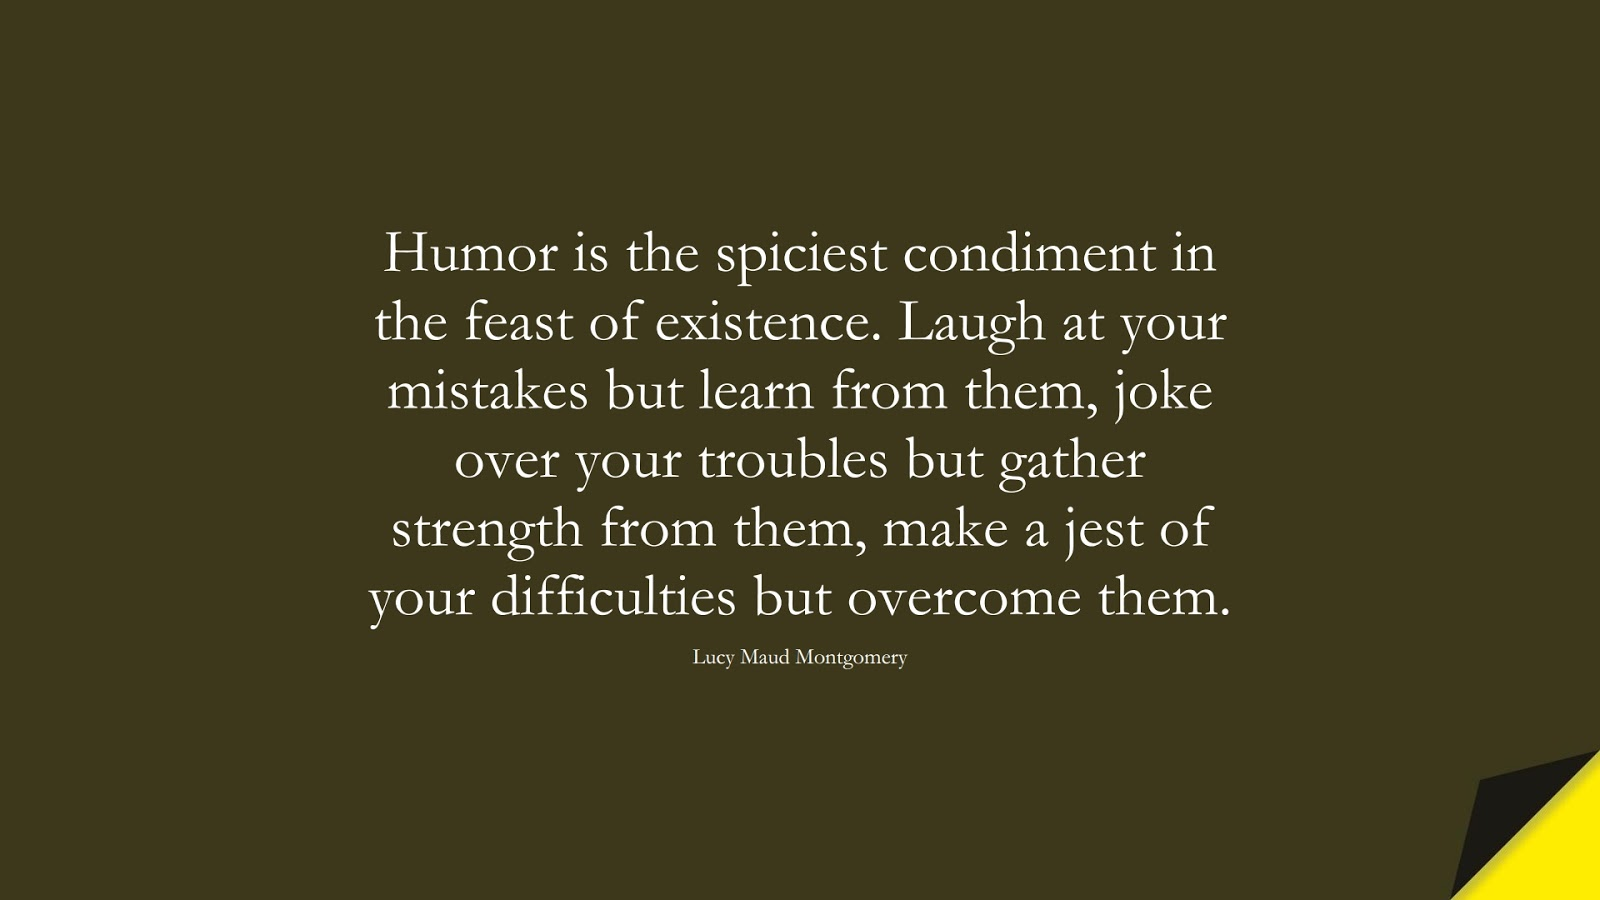 Humor is the spiciest condiment in the feast of existence. Laugh at your mistakes but learn from them, joke over your troubles but gather strength from them, make a jest of your difficulties but overcome them. (Lucy Maud Montgomery);  #EncouragingQuotes